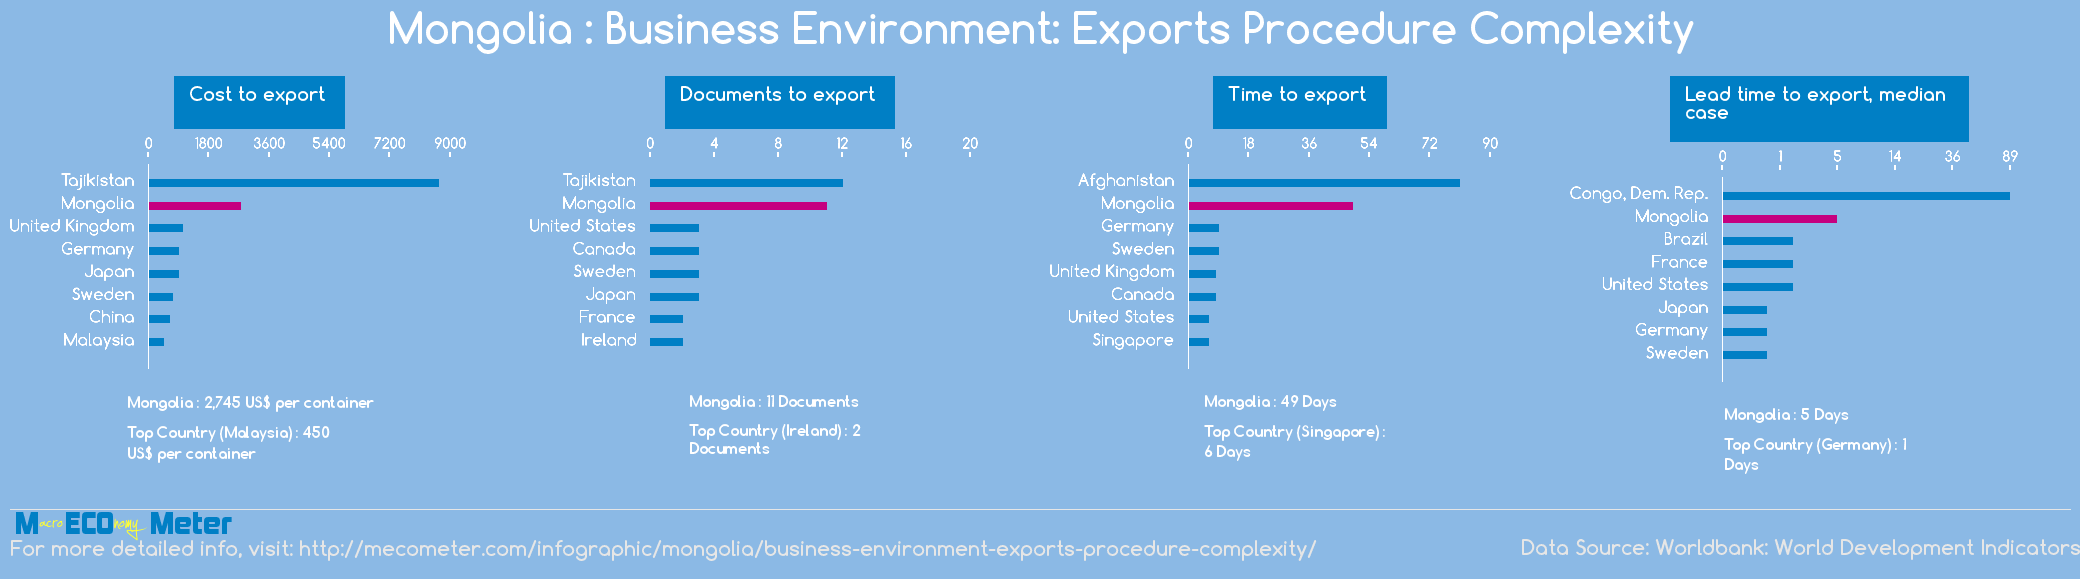 Mongolia : Business Environment: Exports Procedure Complexity